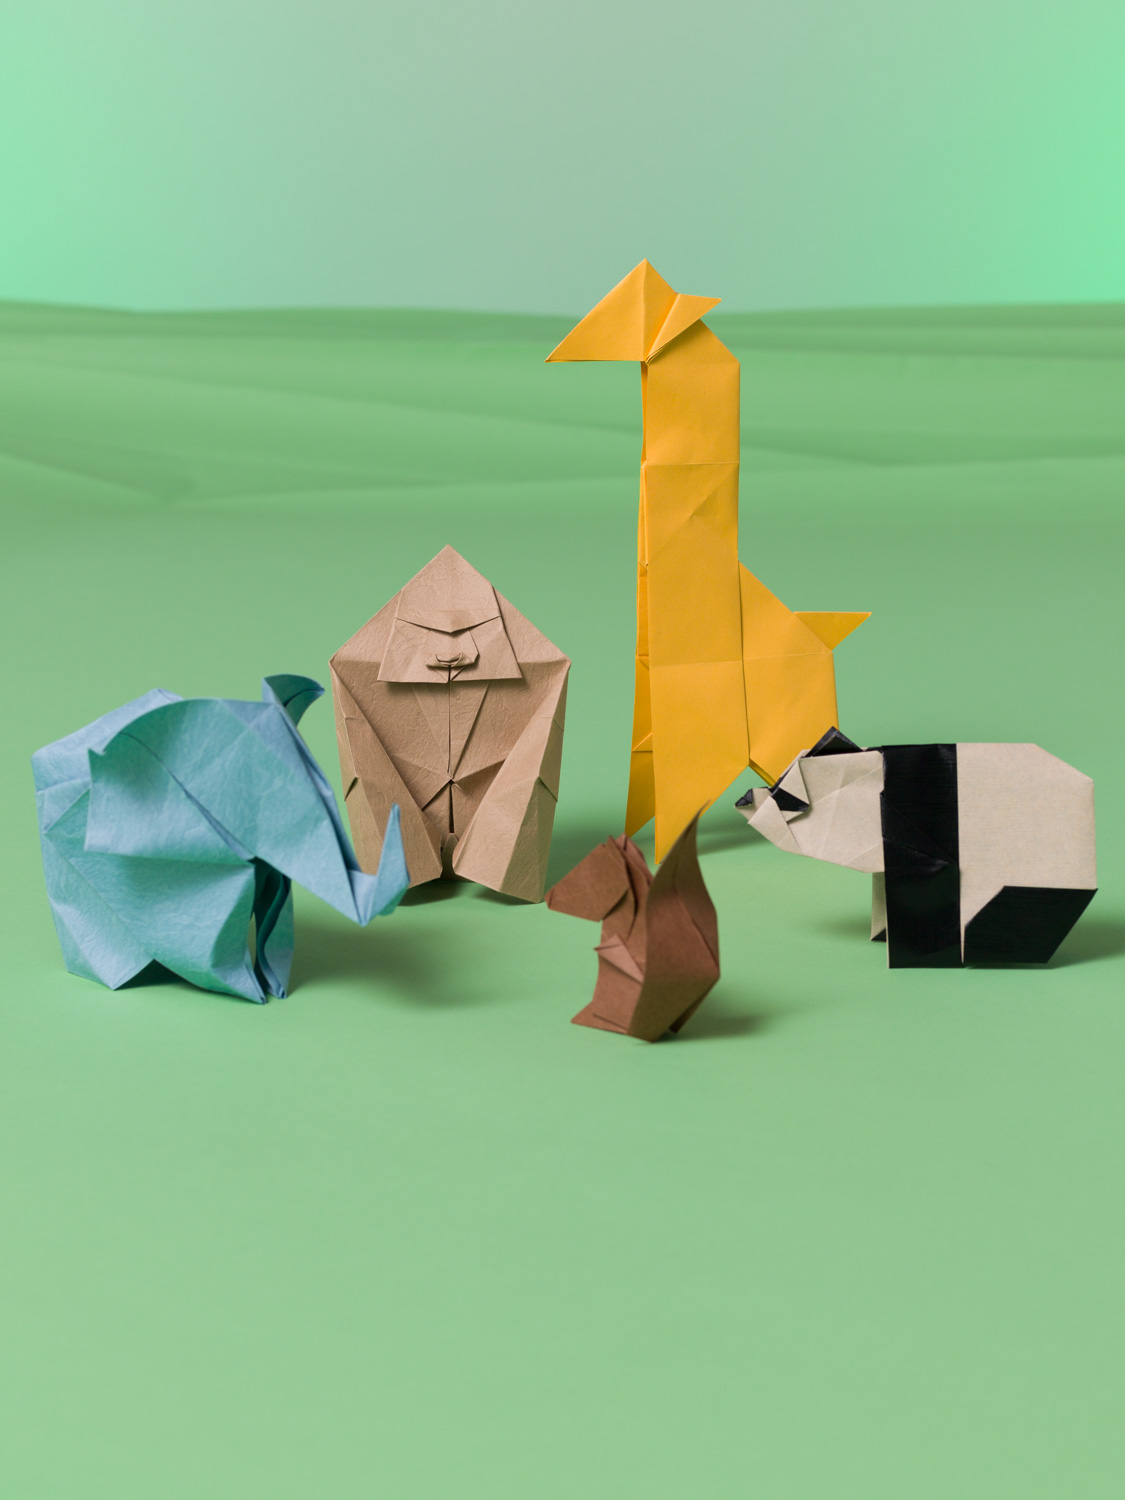 OrigamiAnimals_20170705_166_long1500px_q80_sRGB_v01